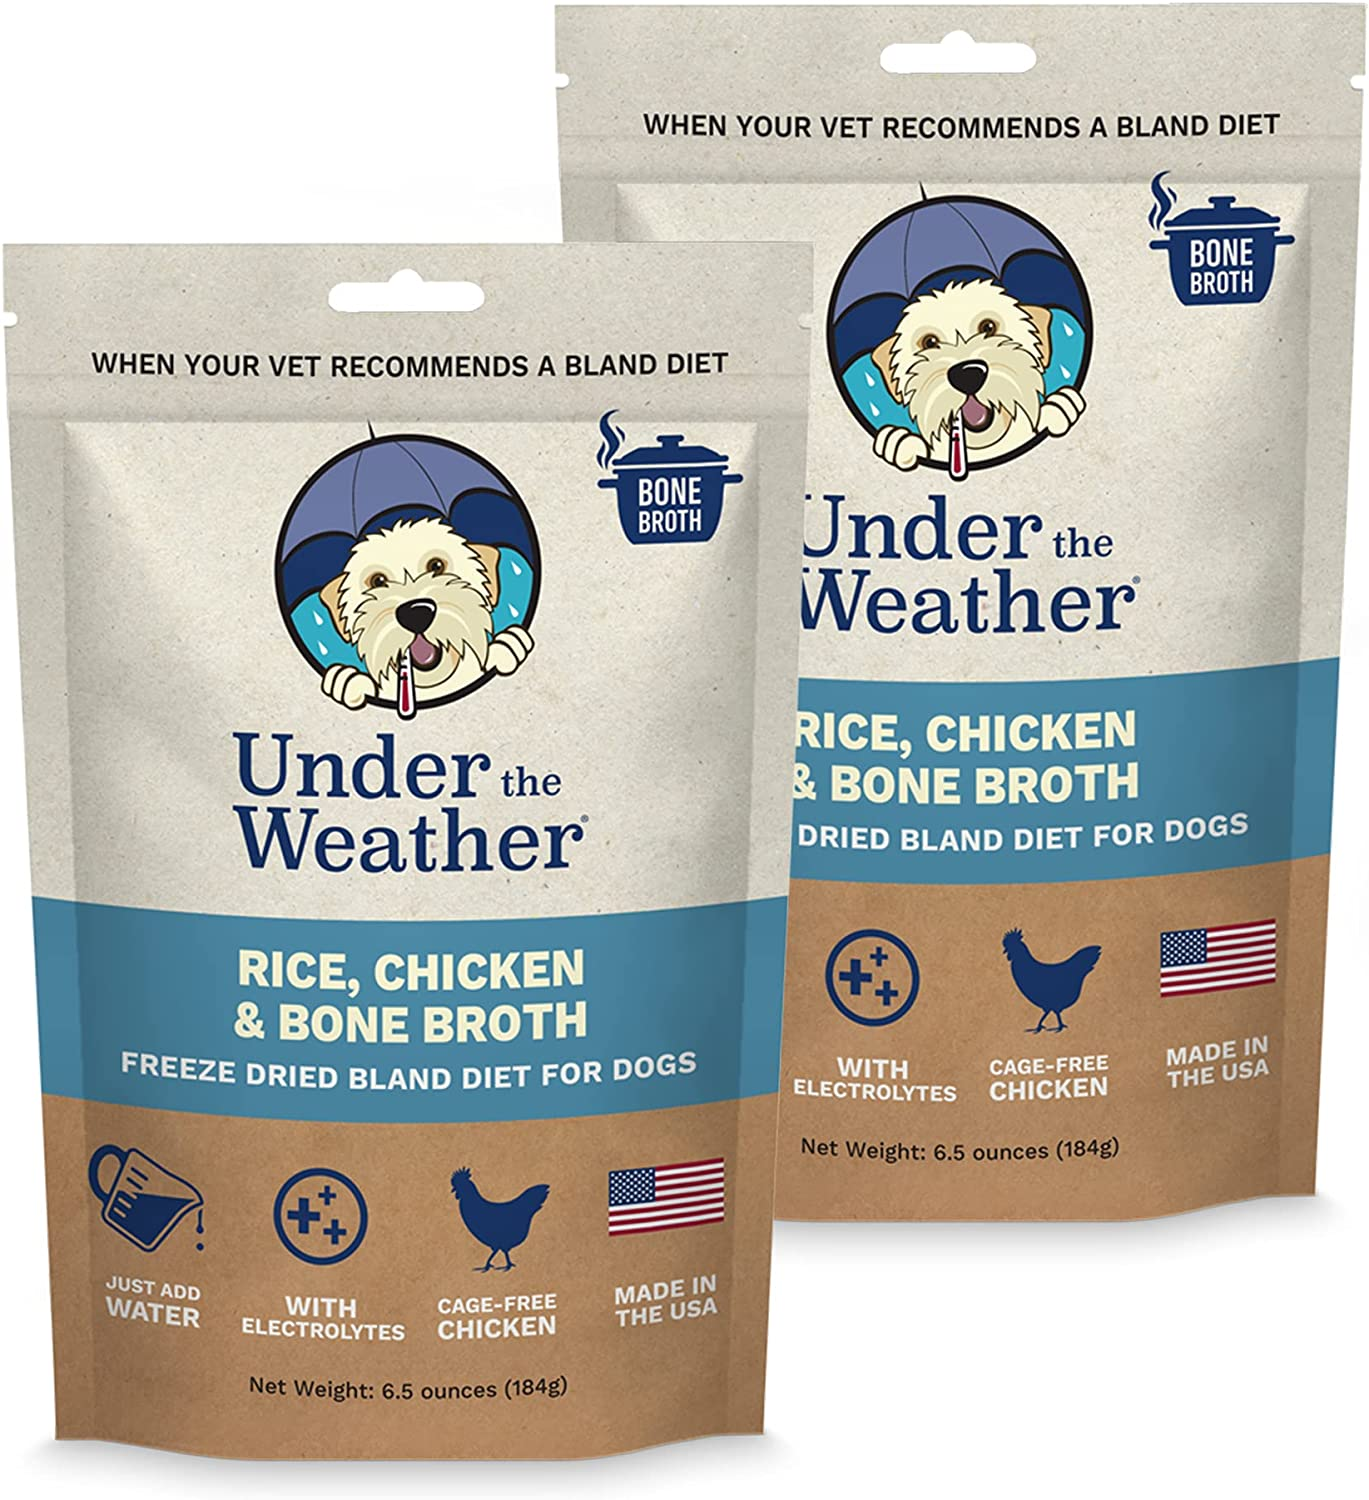 Under the Weather Pets | Rice, Chicken & Bone Broth | Easy to Digest Bland Dog Food Diet - Contains Electrolytes - Gluten Free, All Natural, Freeze Dried 100% Human Grade - 2 Pack